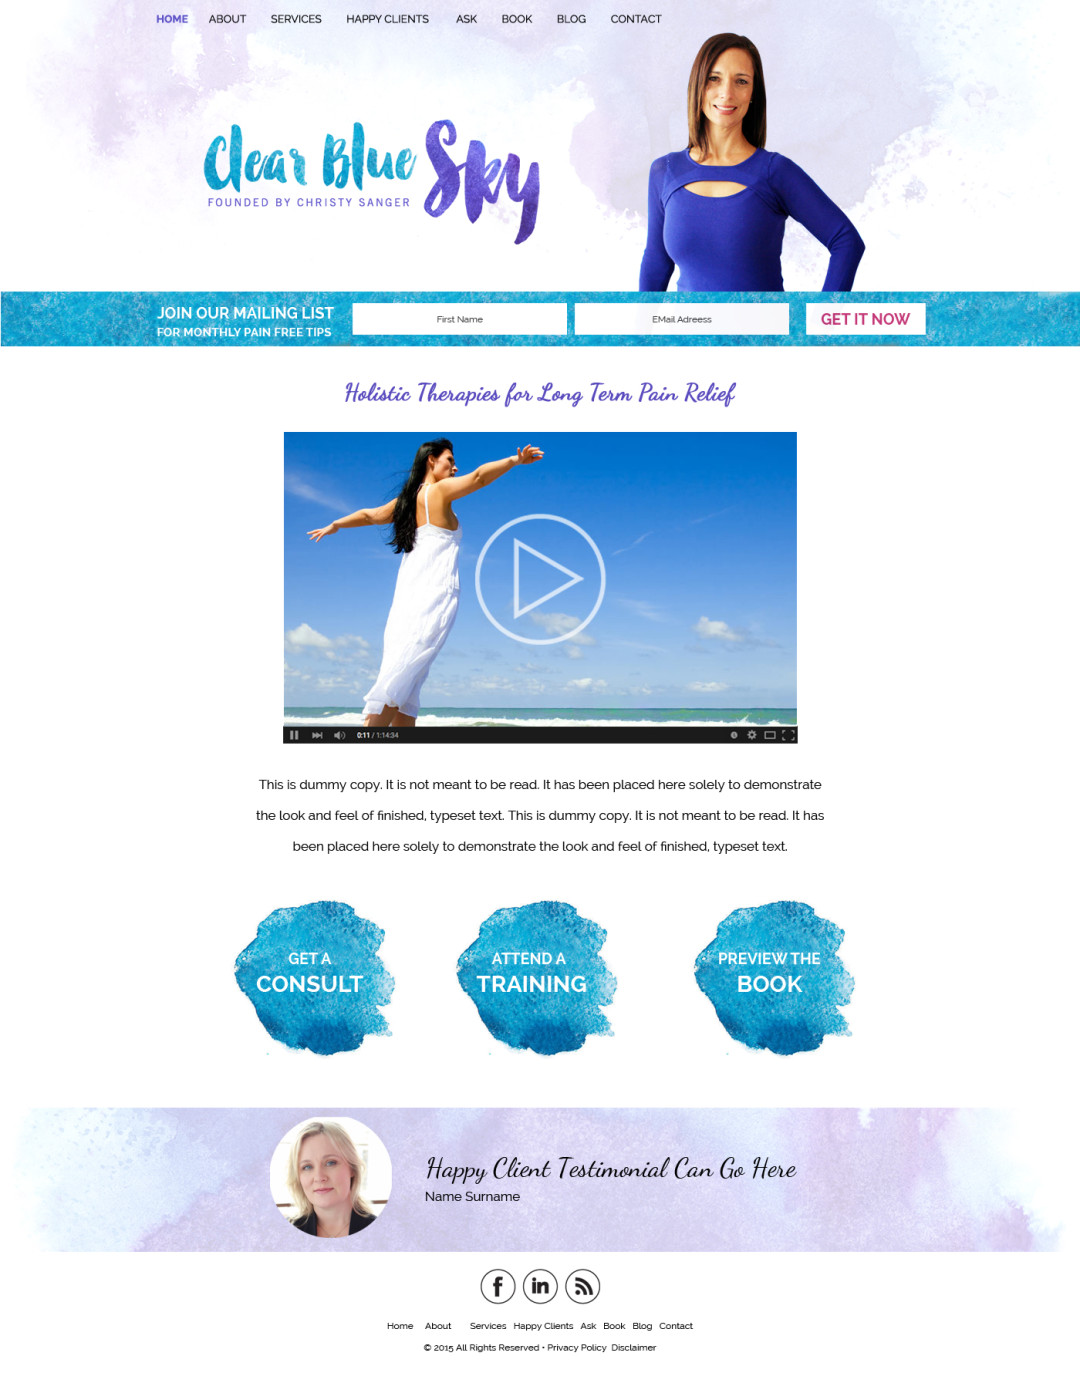 Custom Designed Wordpress Websites for Christy Sanger